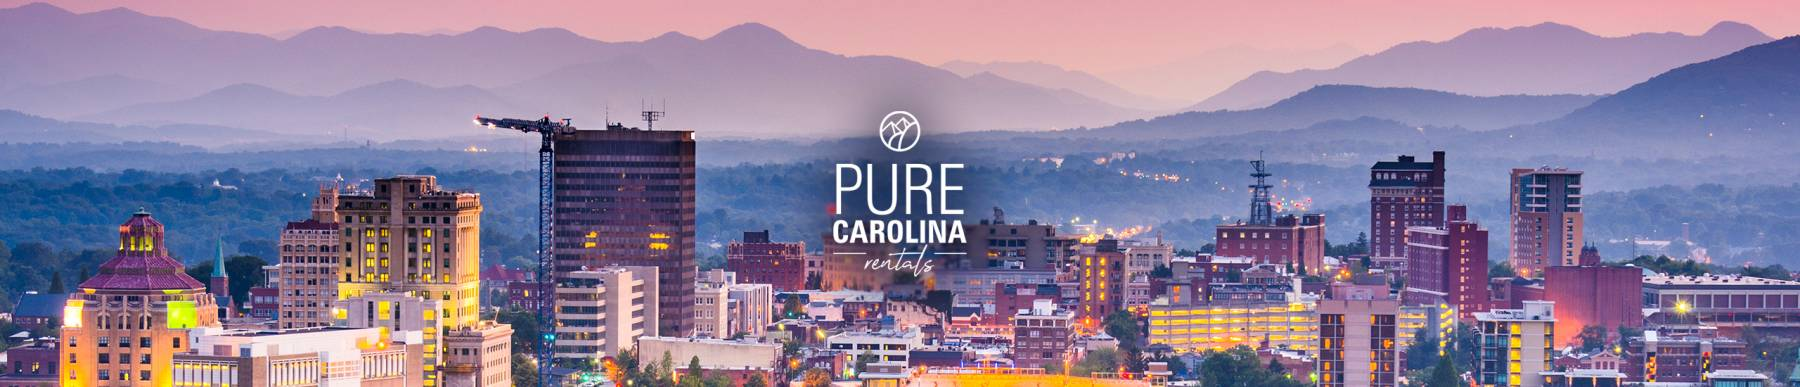 pure carolina Asheville vacation rentals